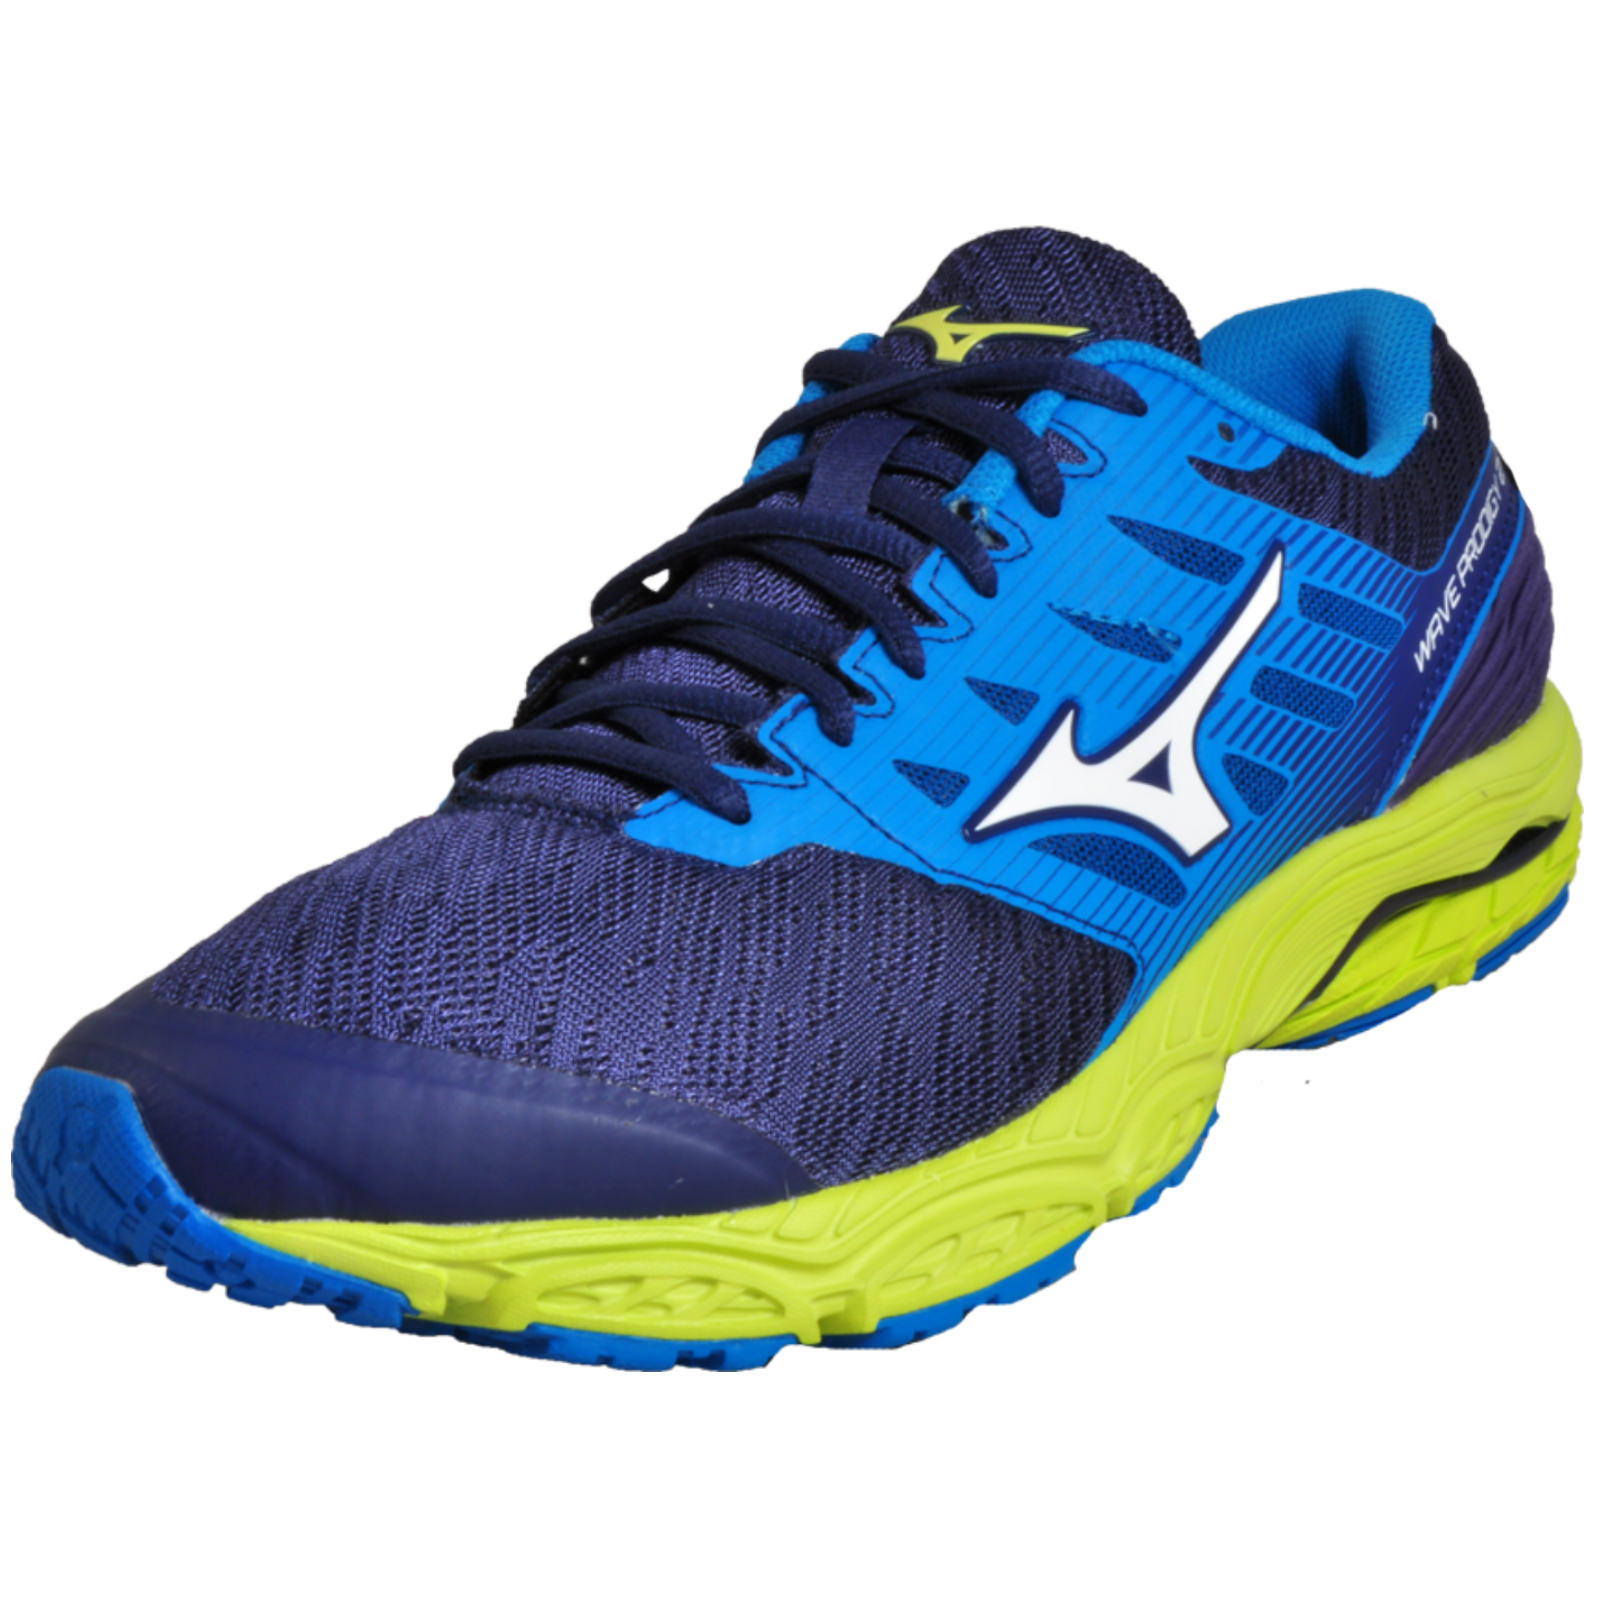 b92bb9256b Details about Mizuno Wave Prodigy 2 Premium High Performance Men s Running  Shoes Navy